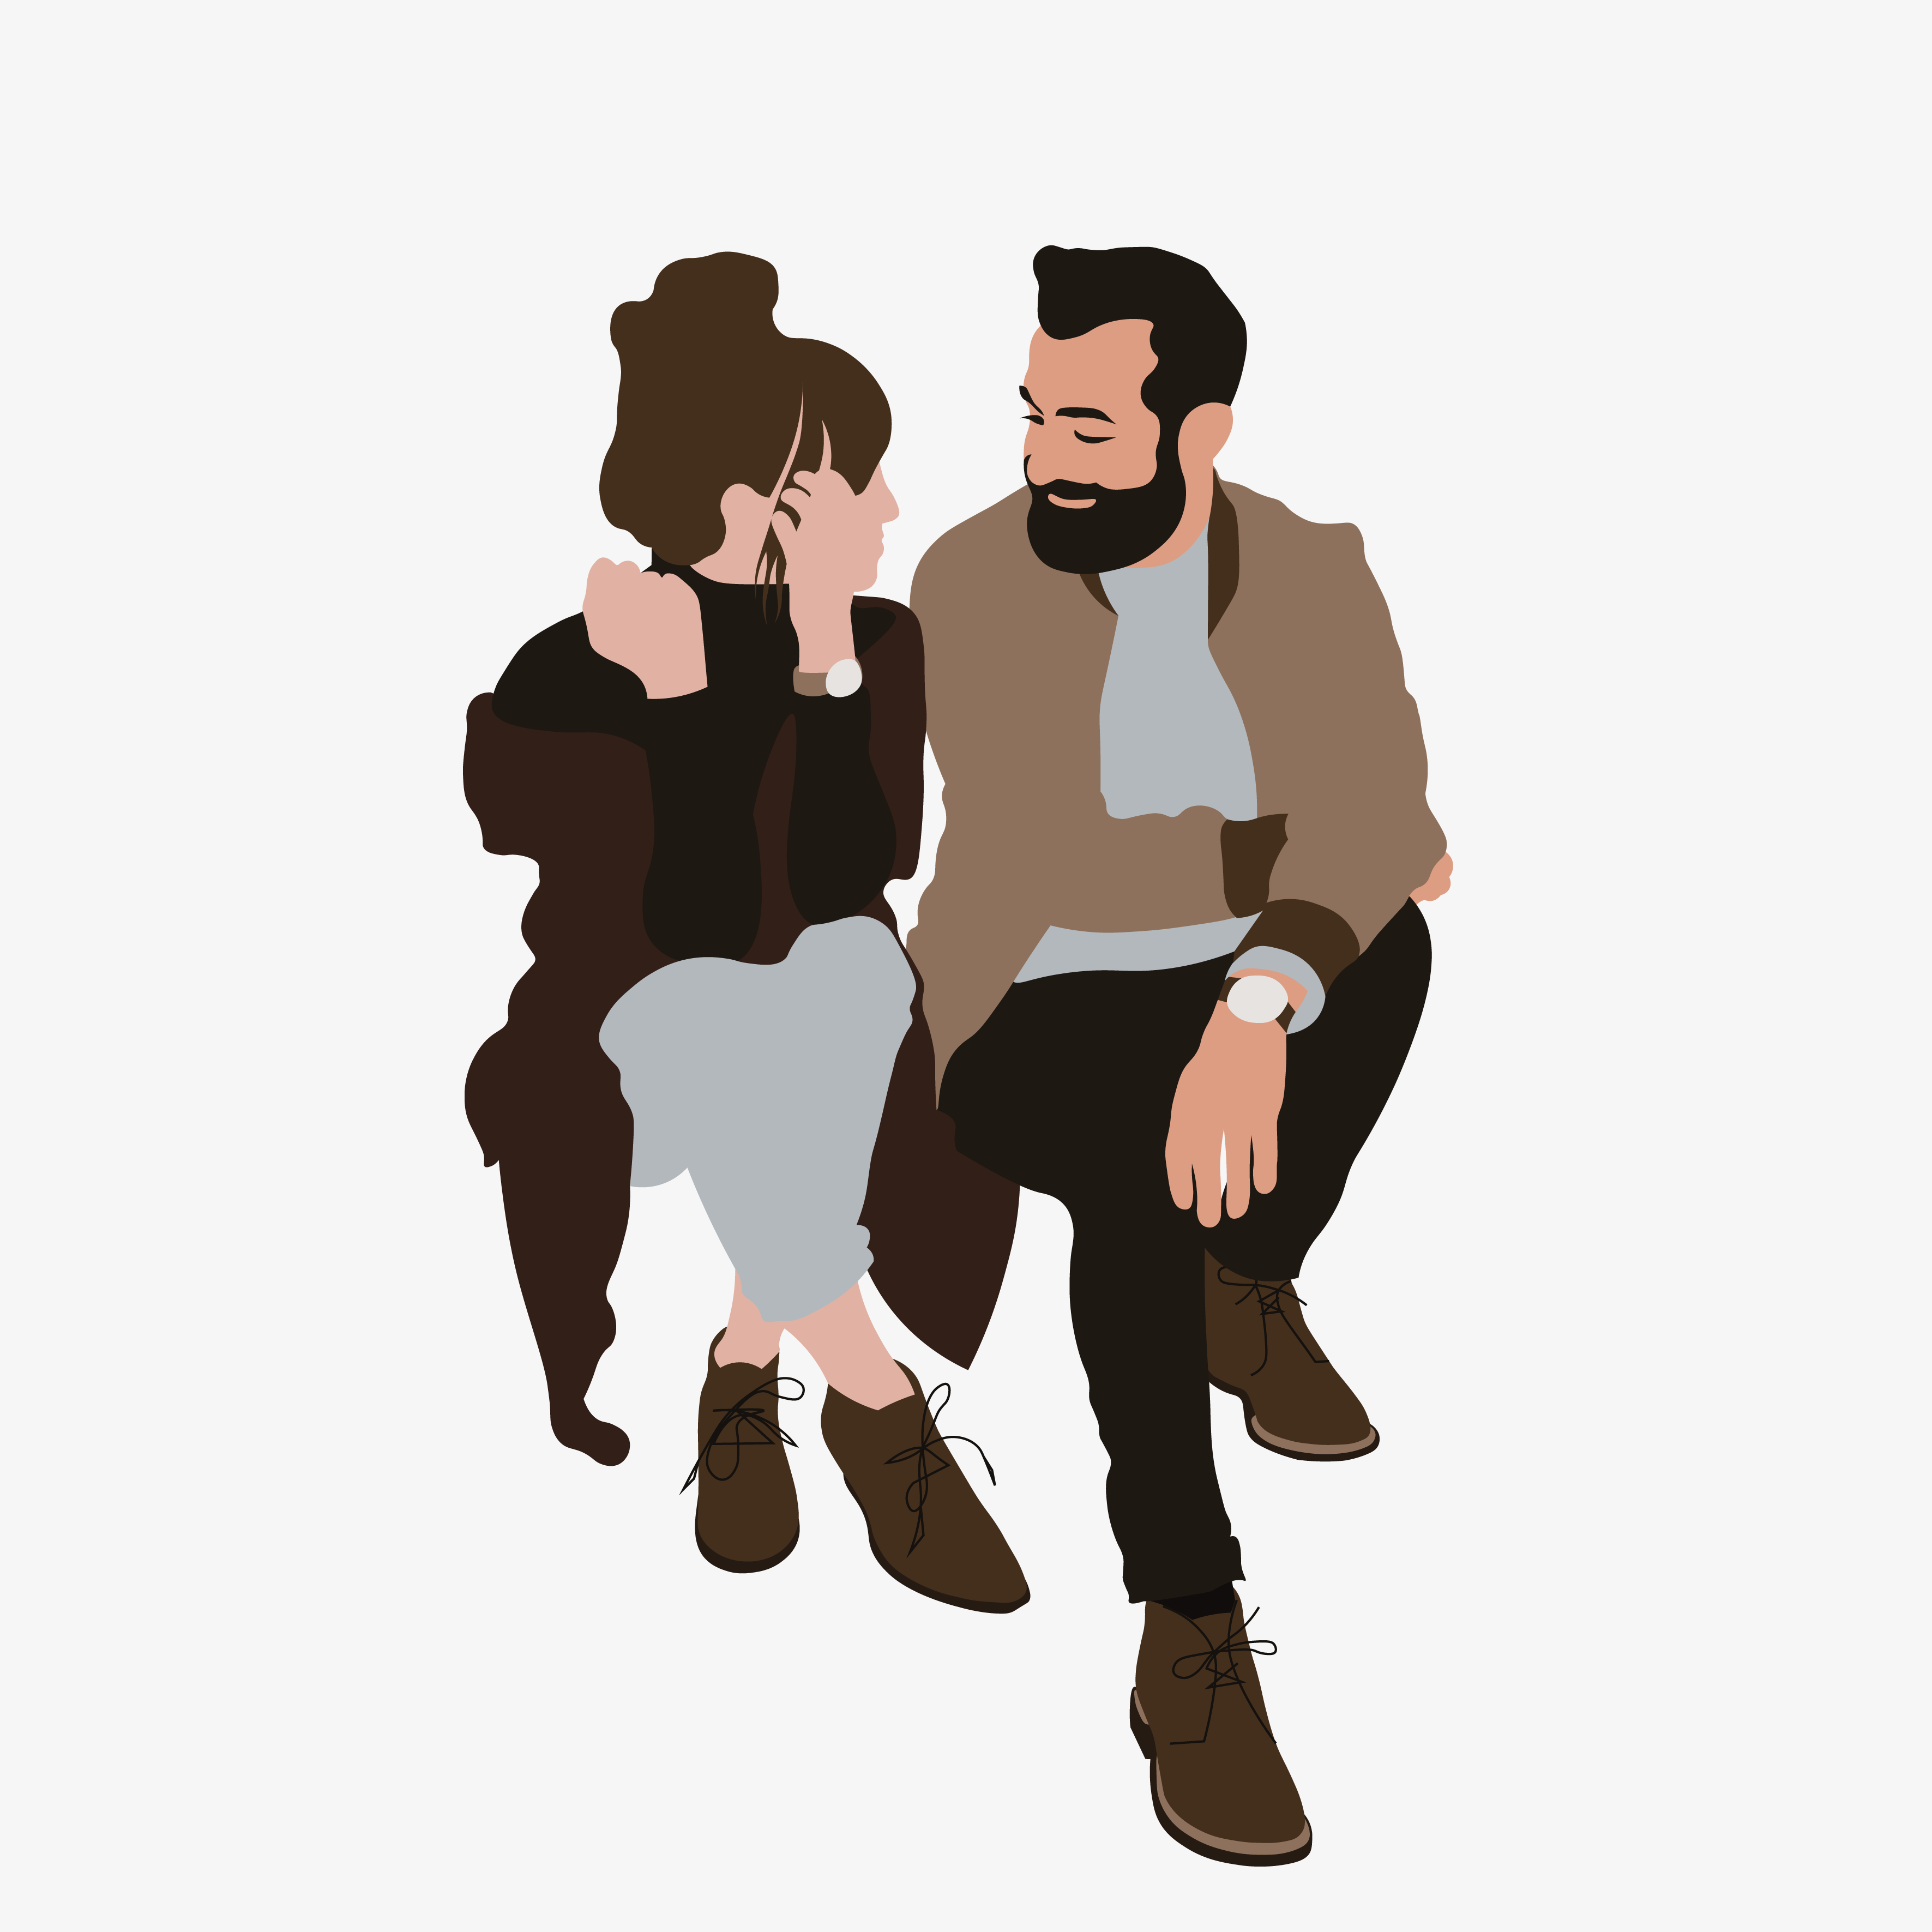 Photo of Flat Vector People Illustration | Arya and Adrien